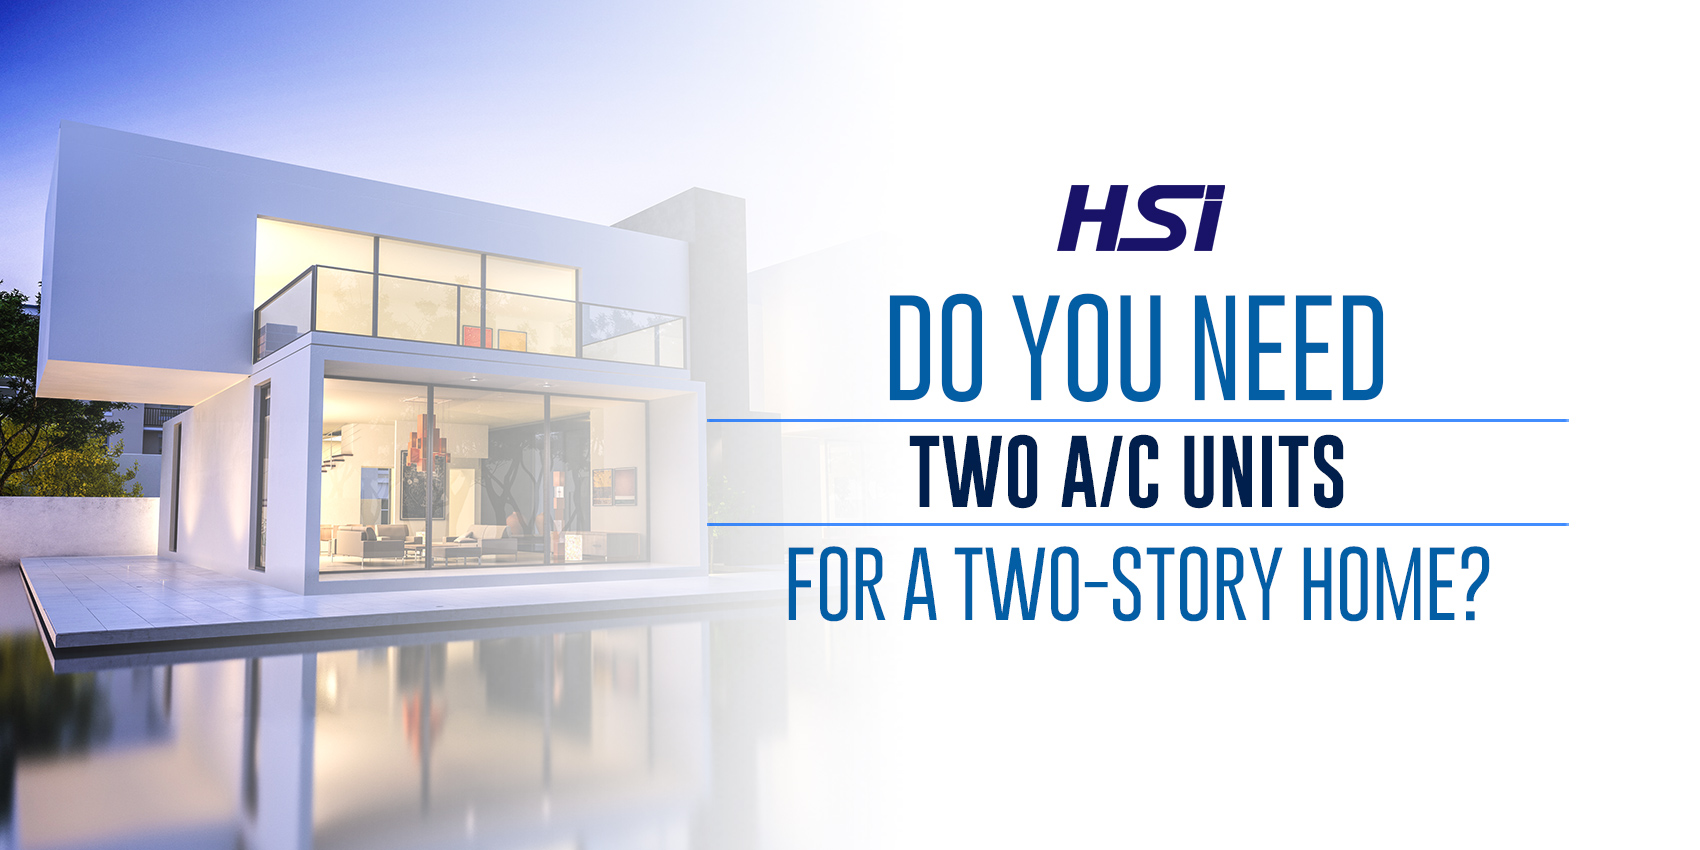 Do You Need Two A/C Units for a Two-Story Home?